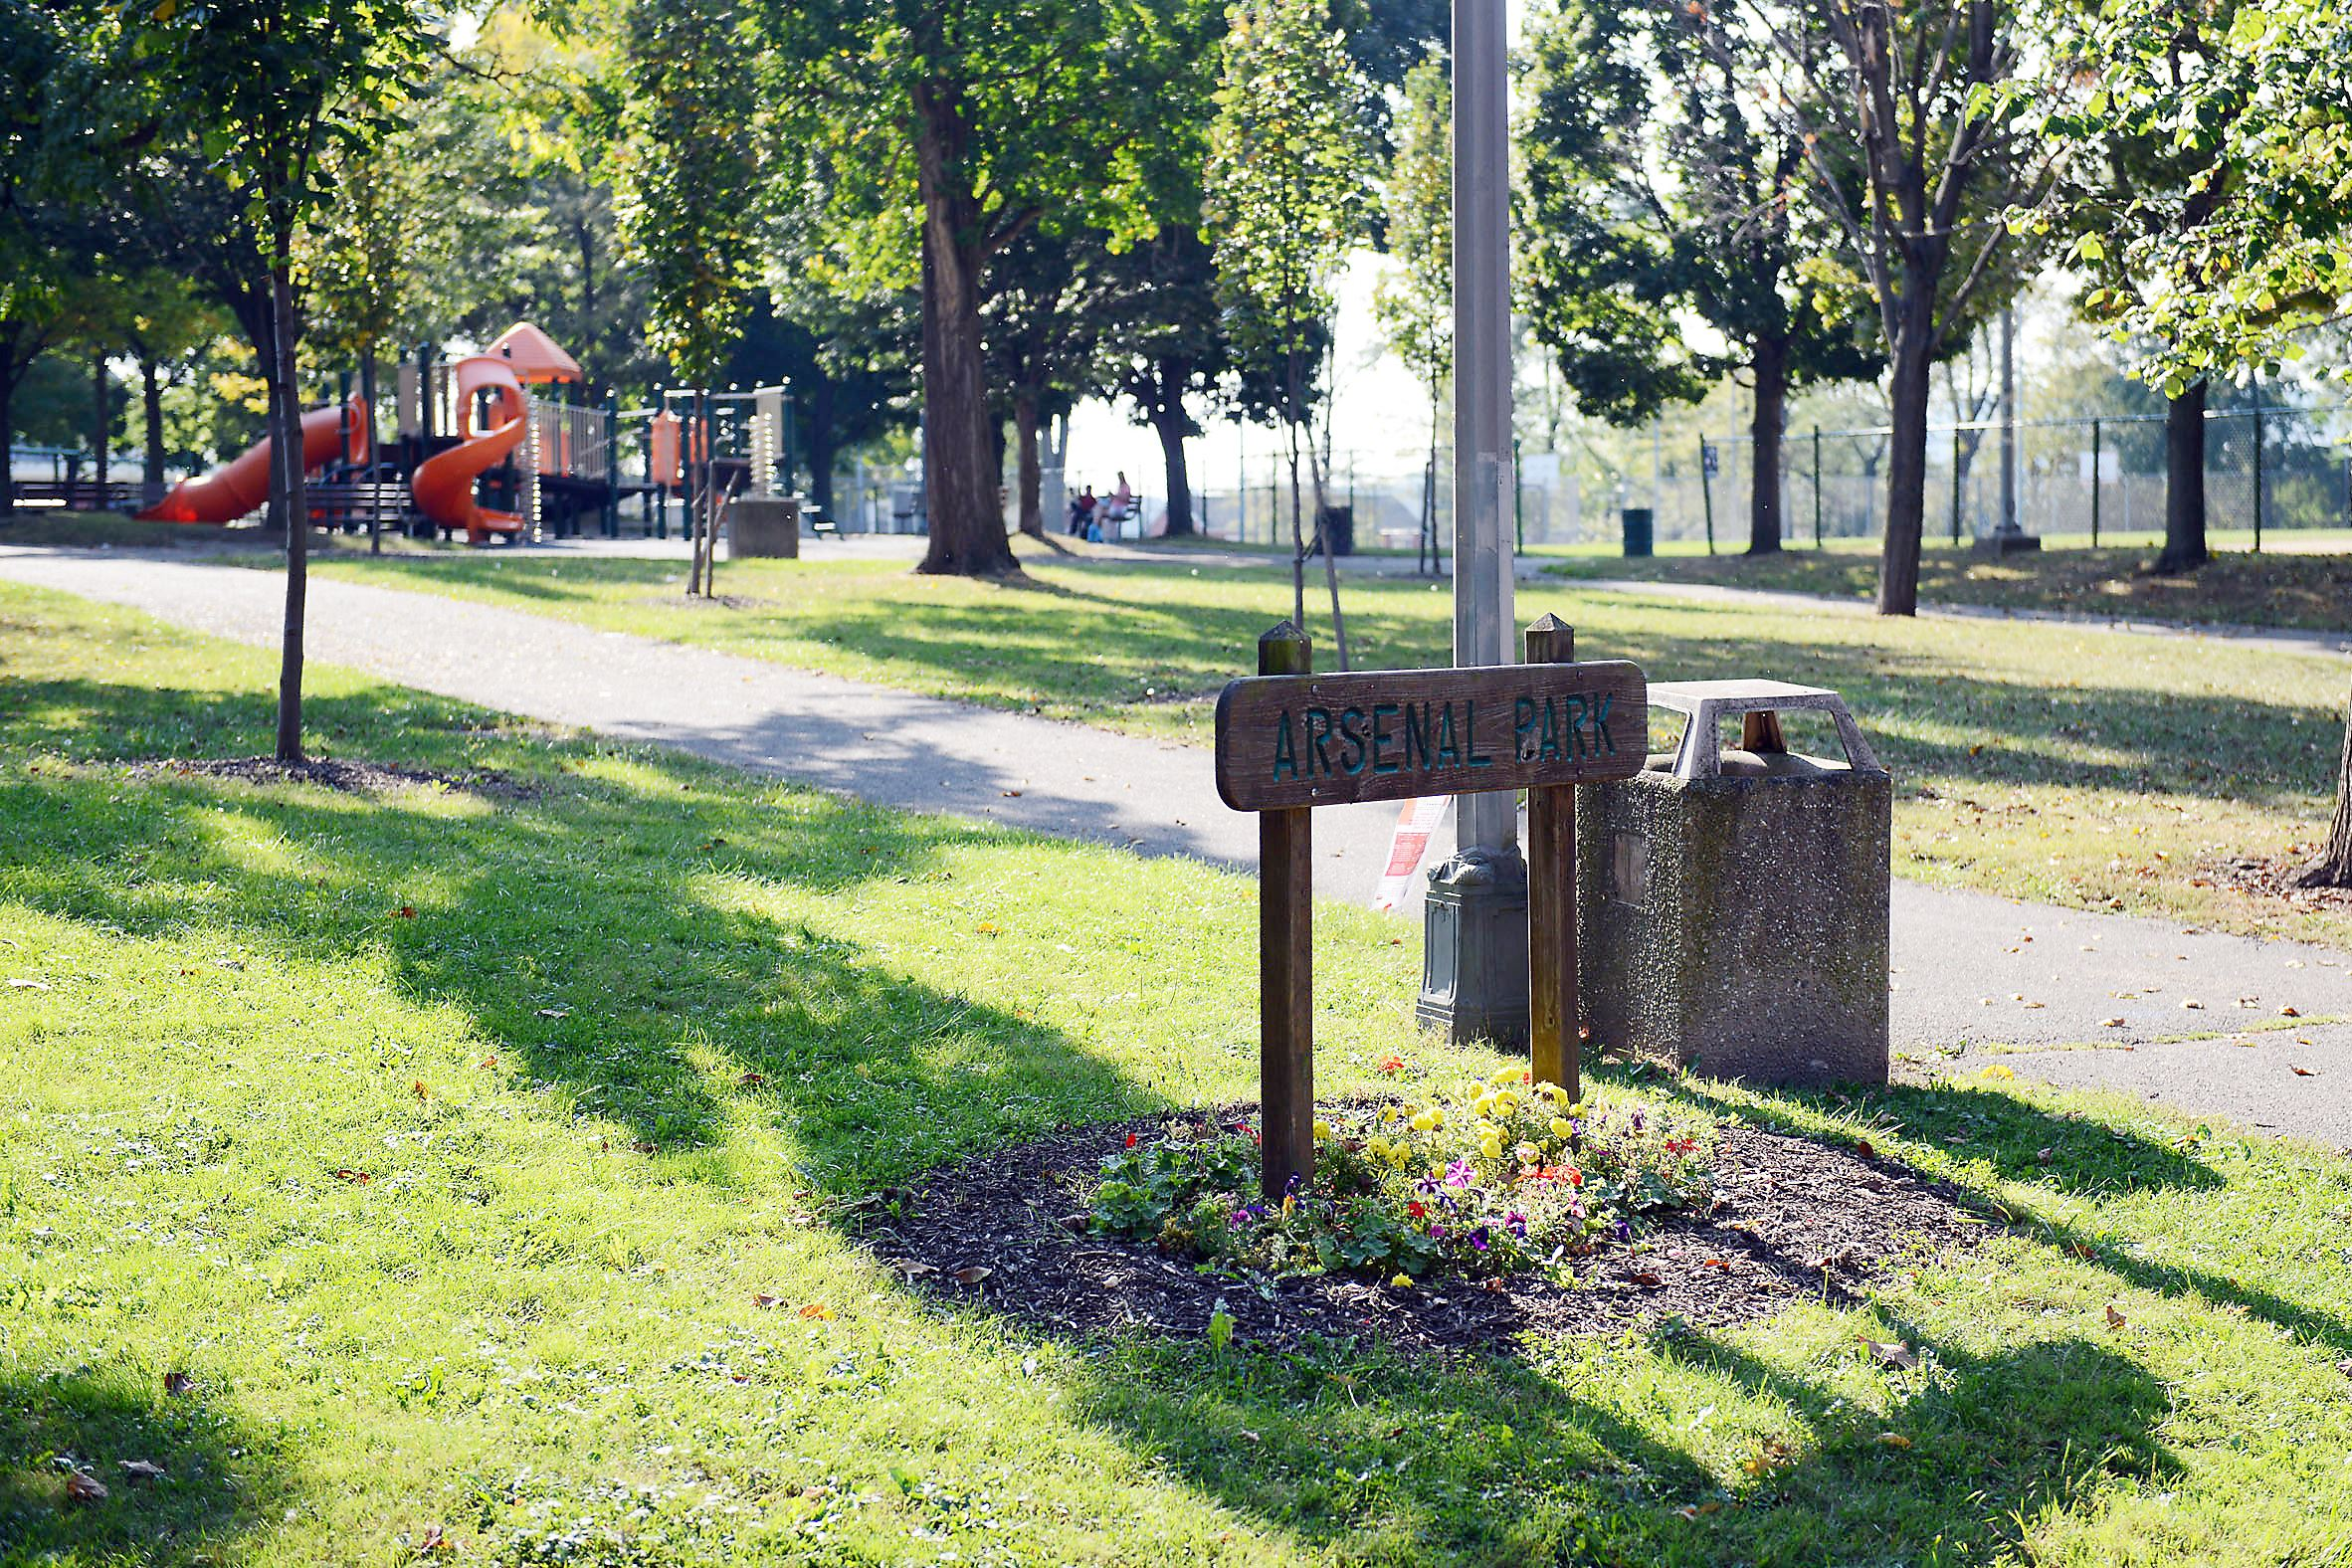 Master Plan For Lawrenceville S Arsenal Park Respects